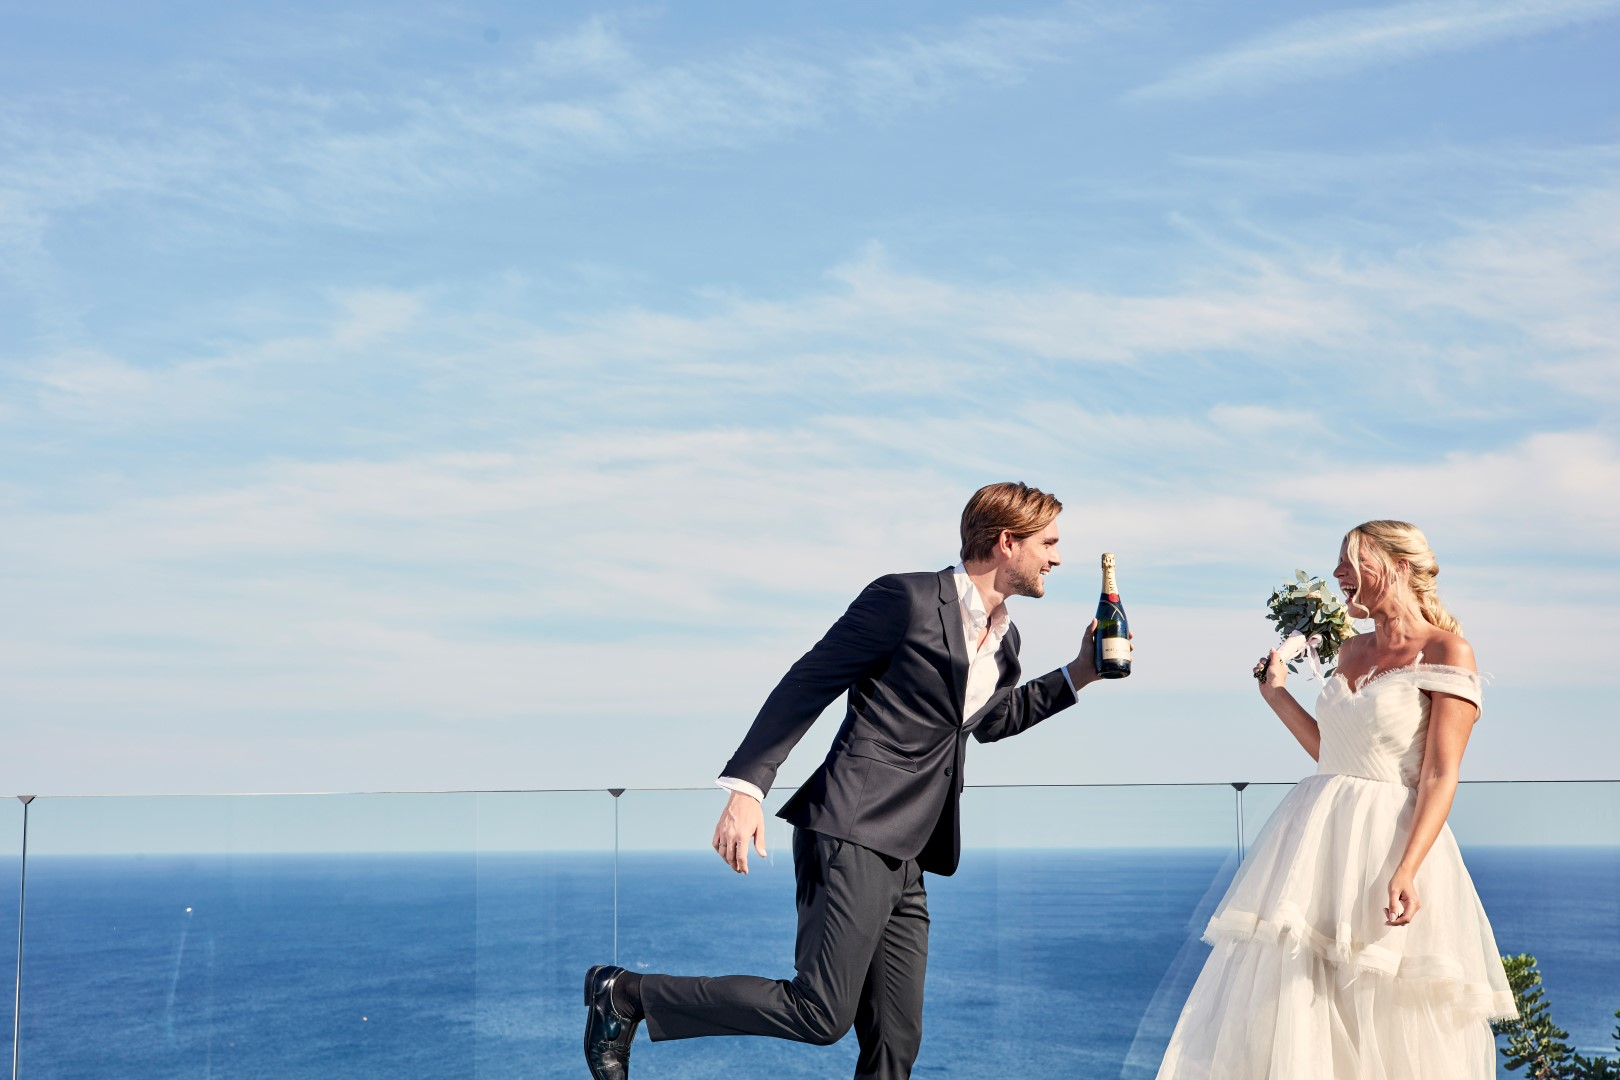 A gorgeous wedding in Rhodes overlooking the endless blue of the Aegean Sea!